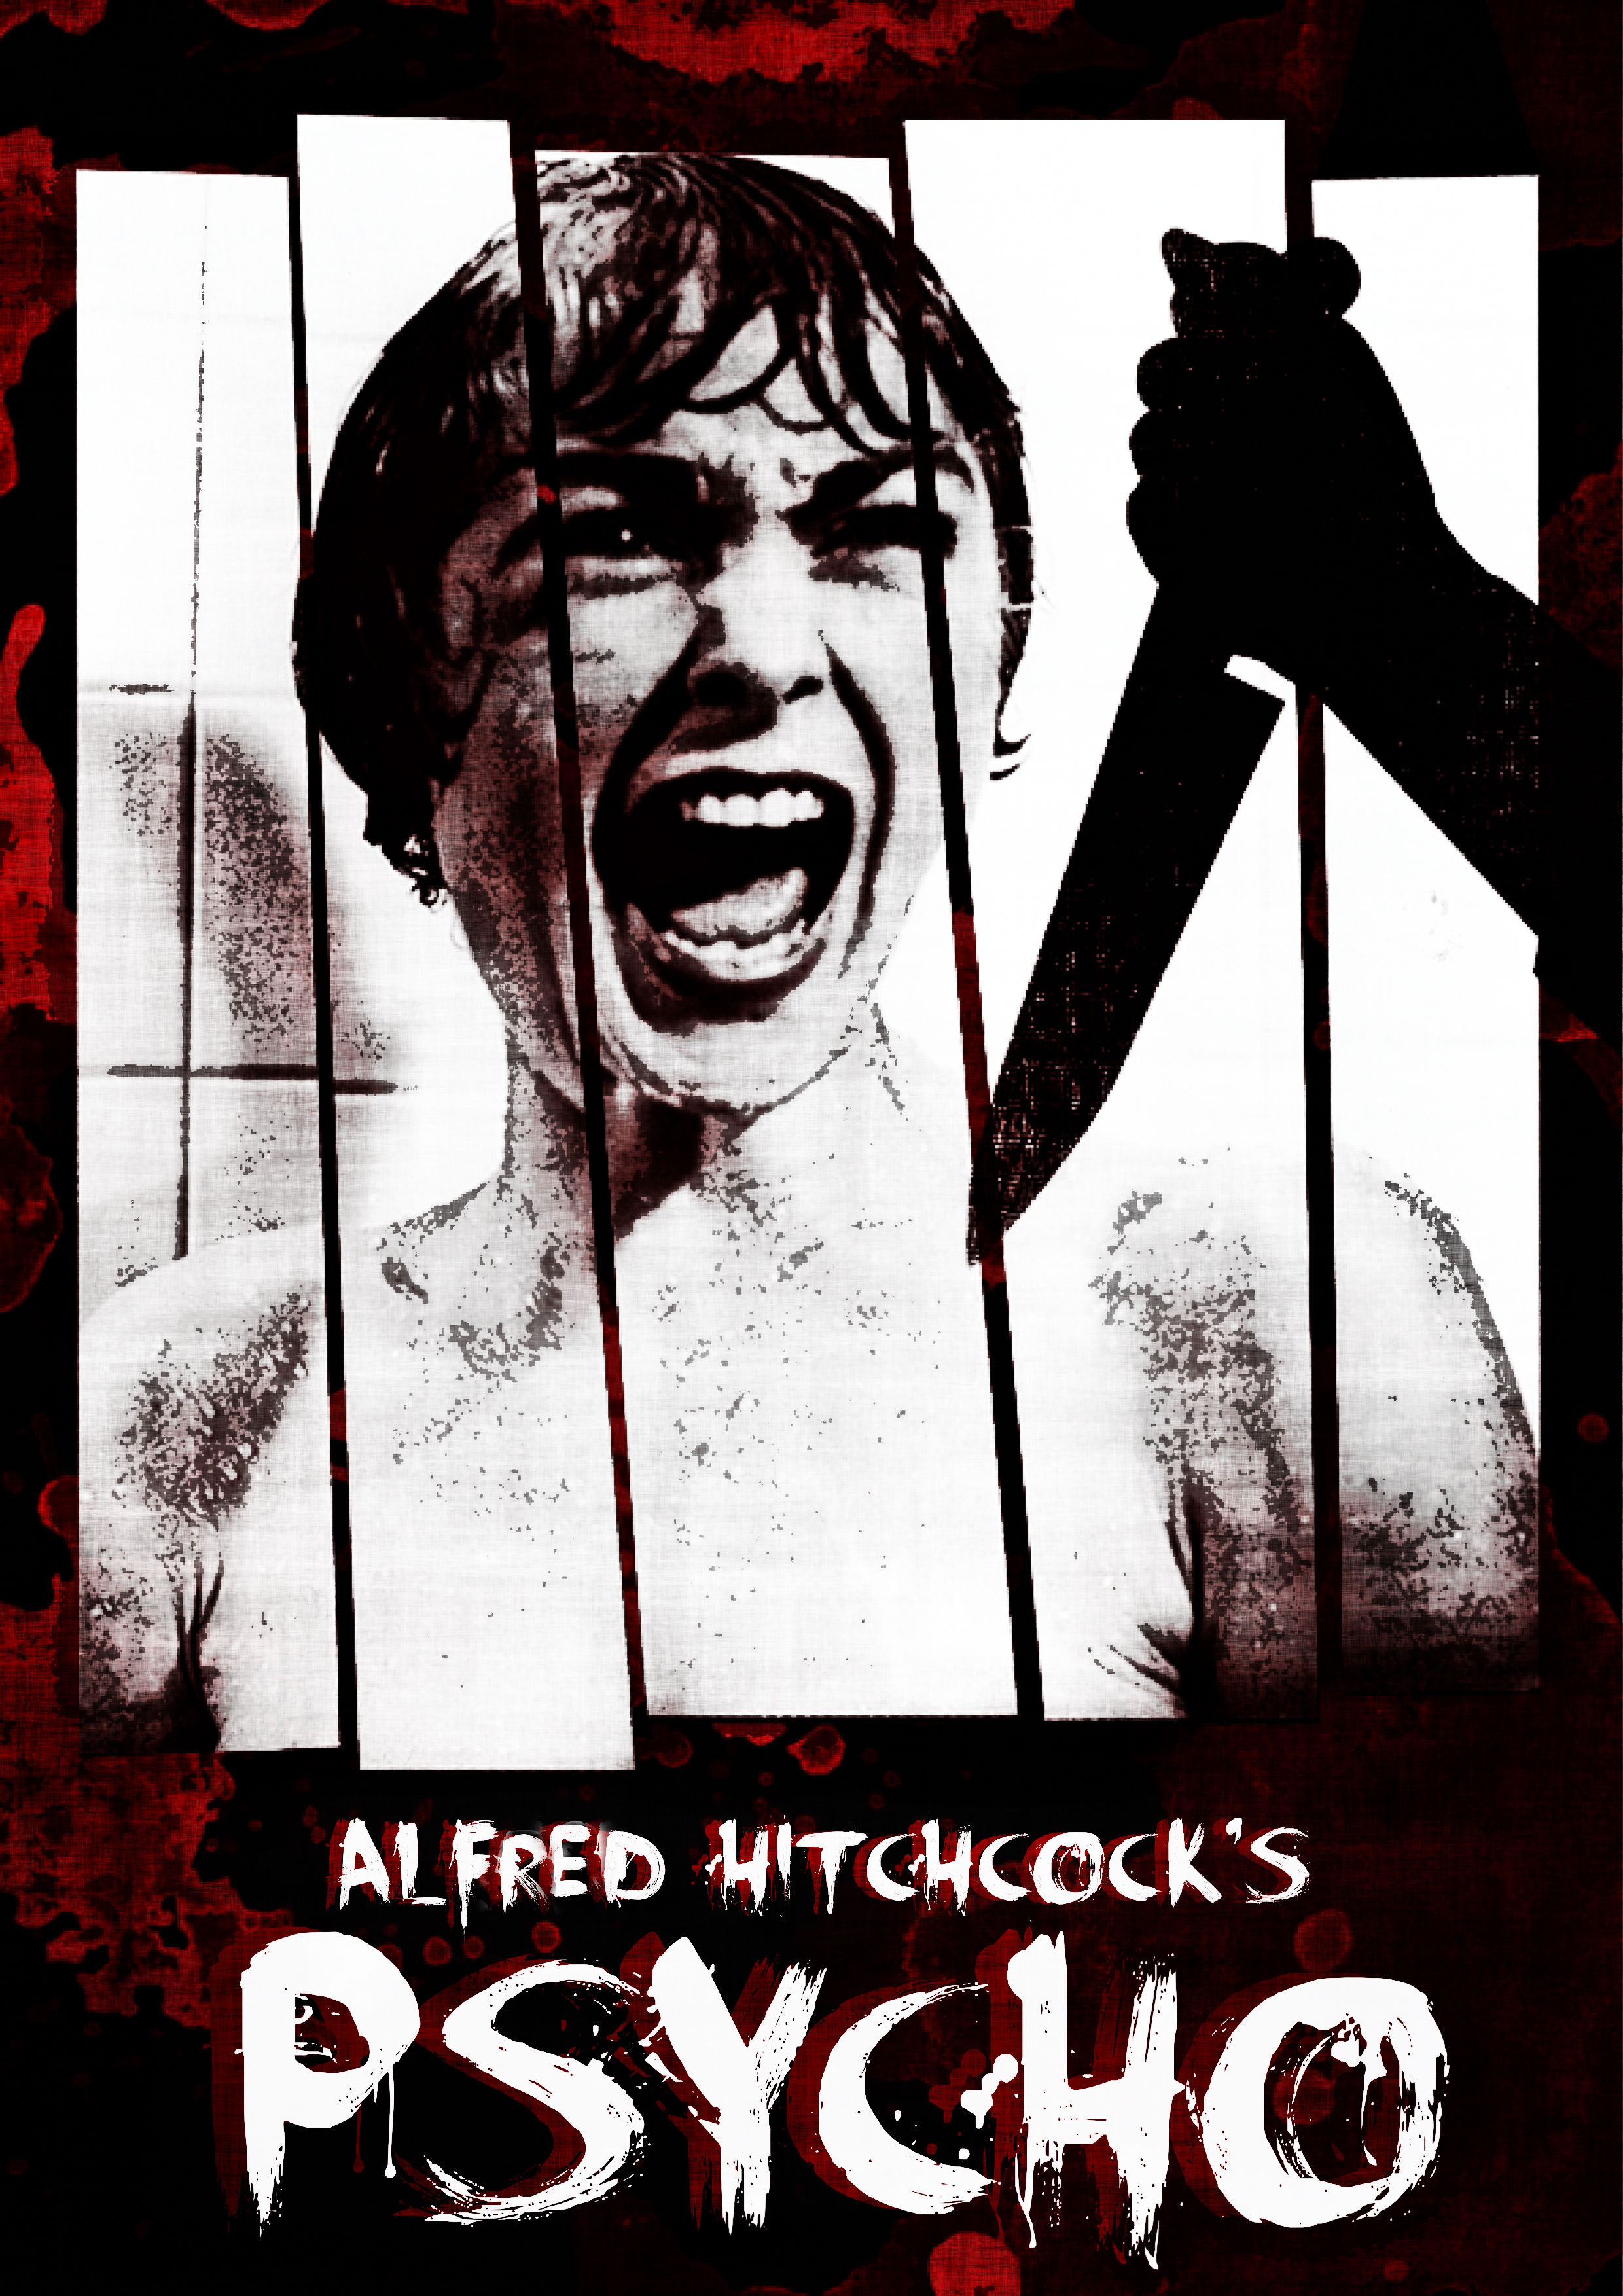 film analysis of alfred hitchcocks psycho The parlour scene of alfred hitchcock's famous thriller film, psycho (1960), is rife with foreboding something that can only be truly noticed if you know what's to come and you've seen the film before.